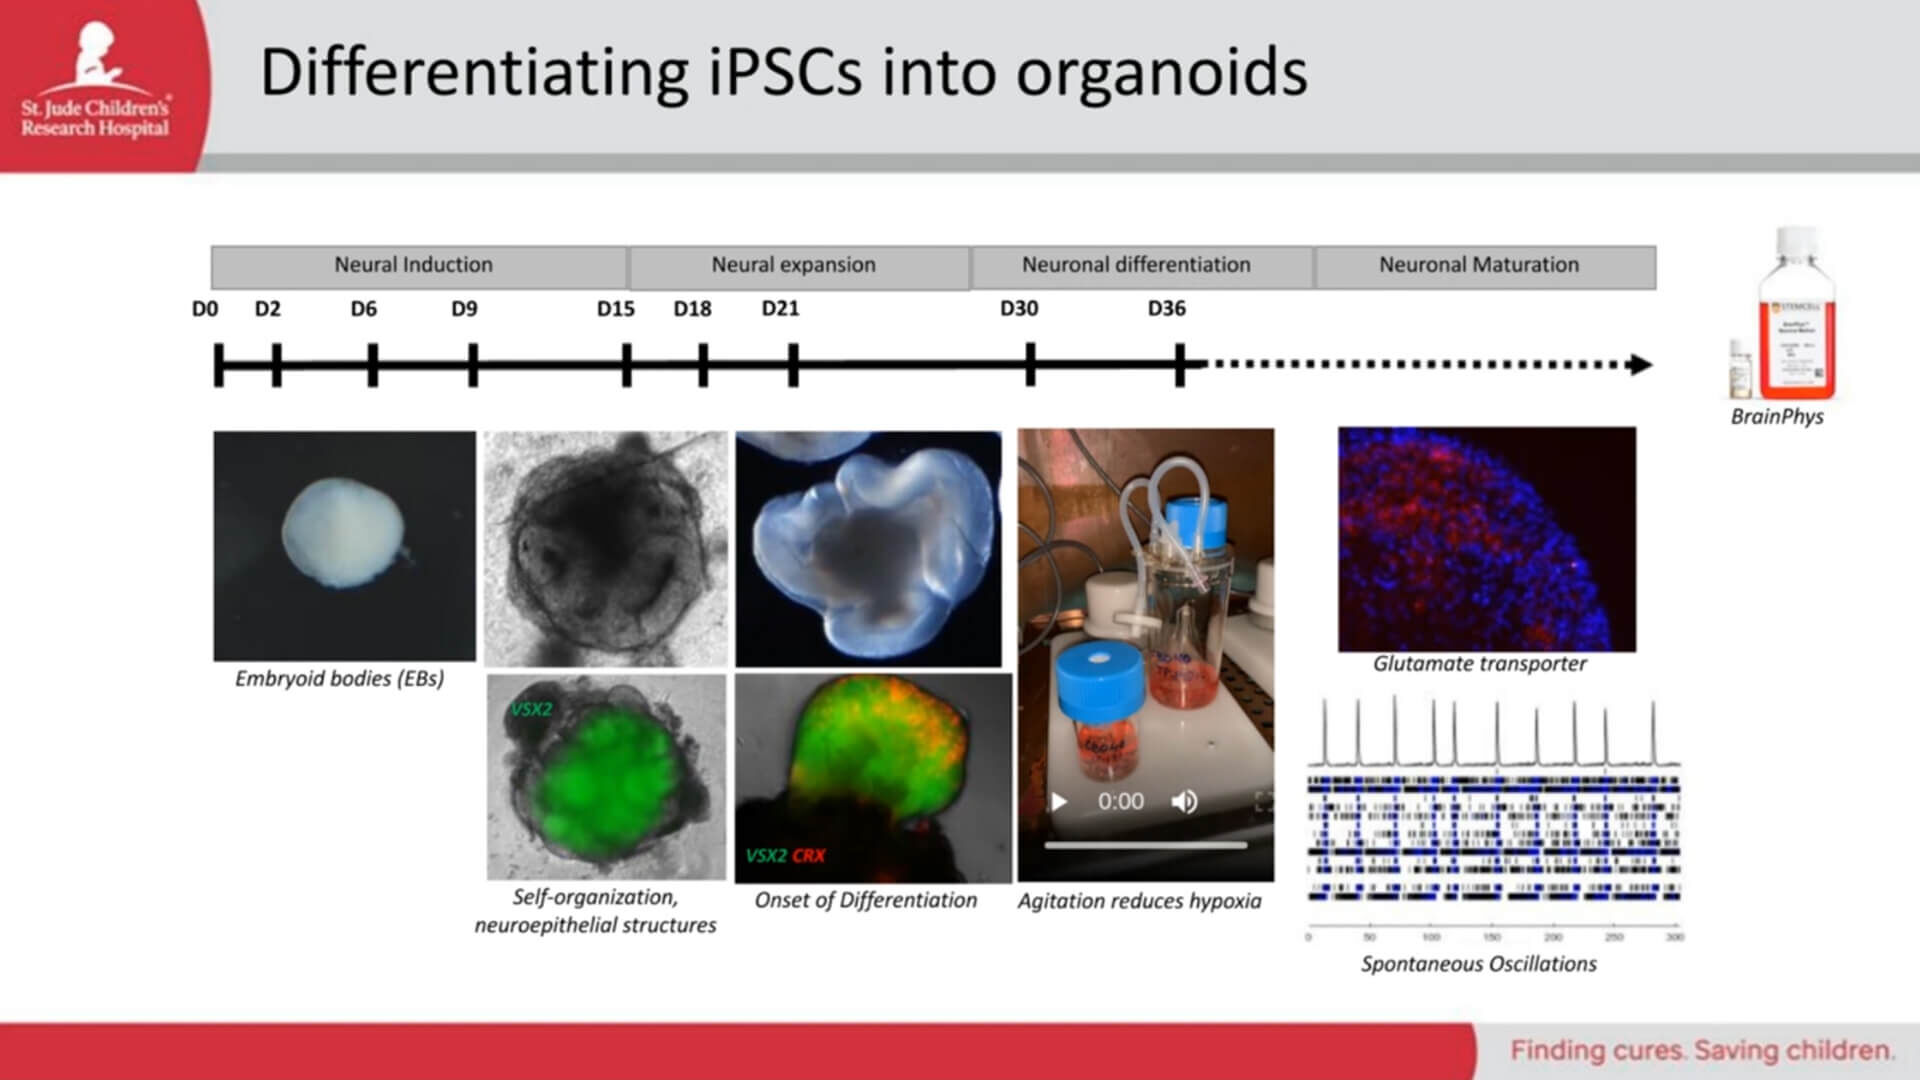 iPSCs As Models, Part 1: What Are Induced Pluripotent Stem Cells and How Do You Use Them?